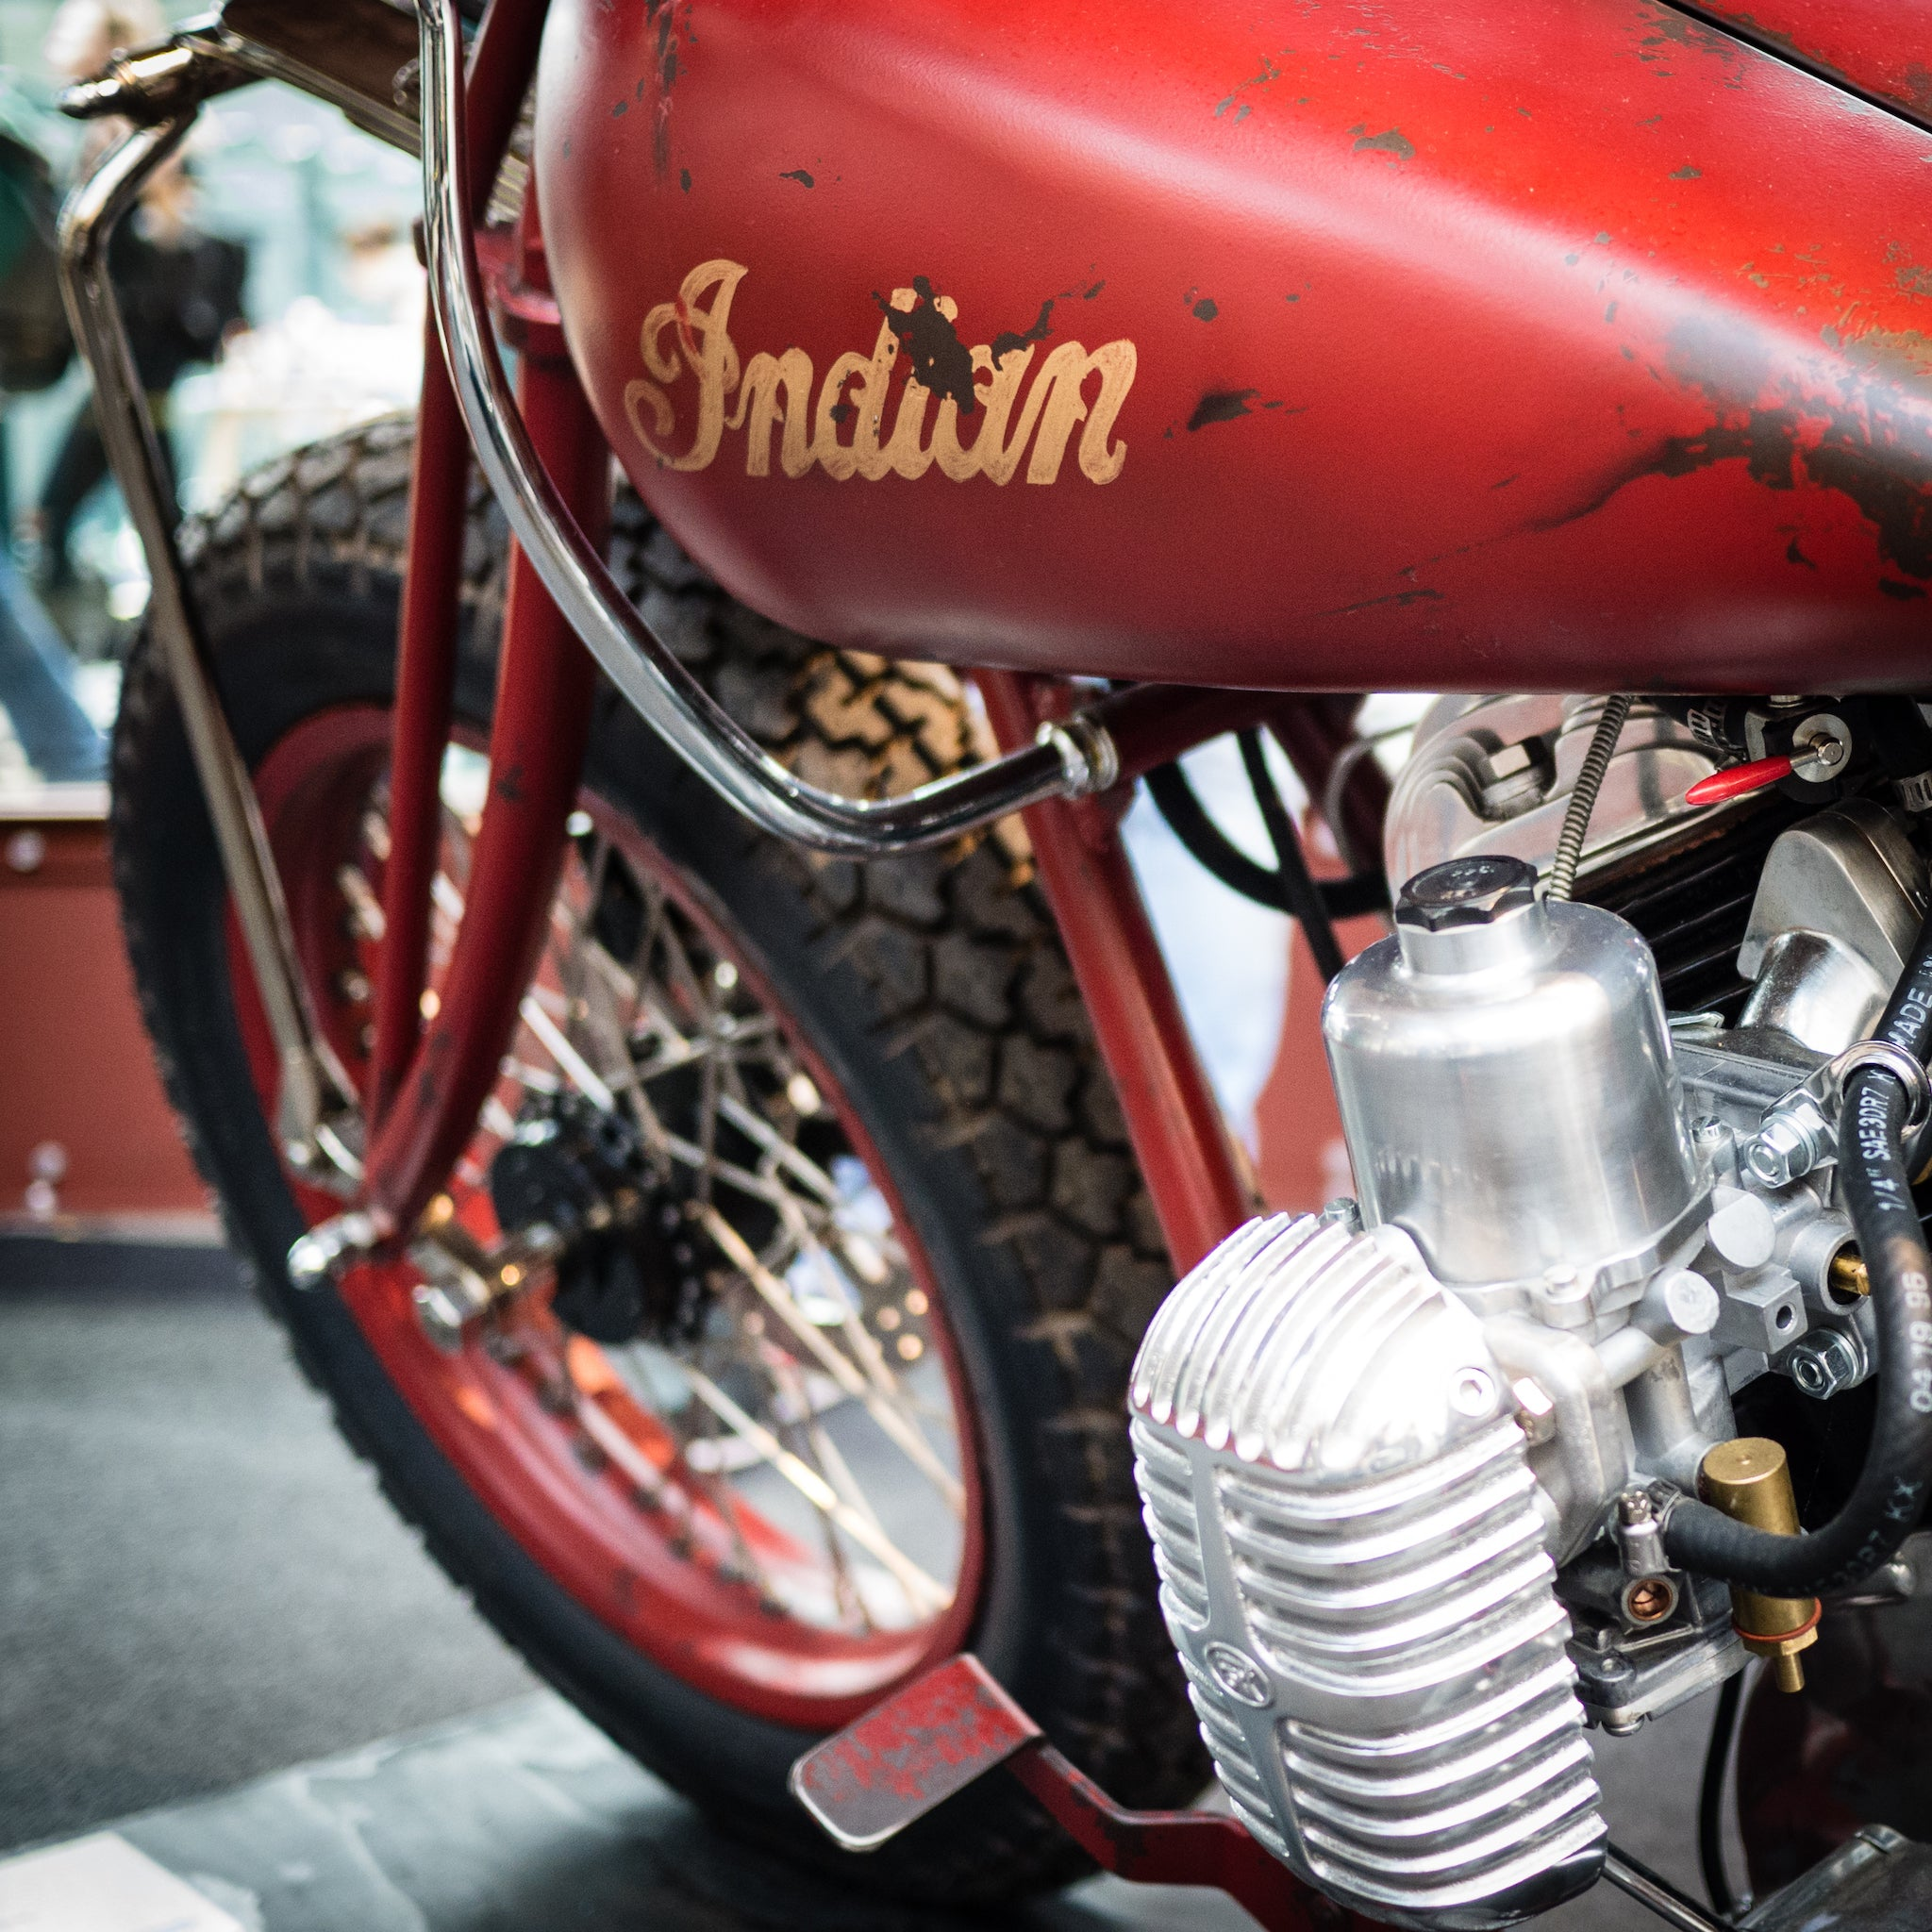 Oil Can Grooming Bike Shed event Tobacco Dock London custom Indian Motorcycle